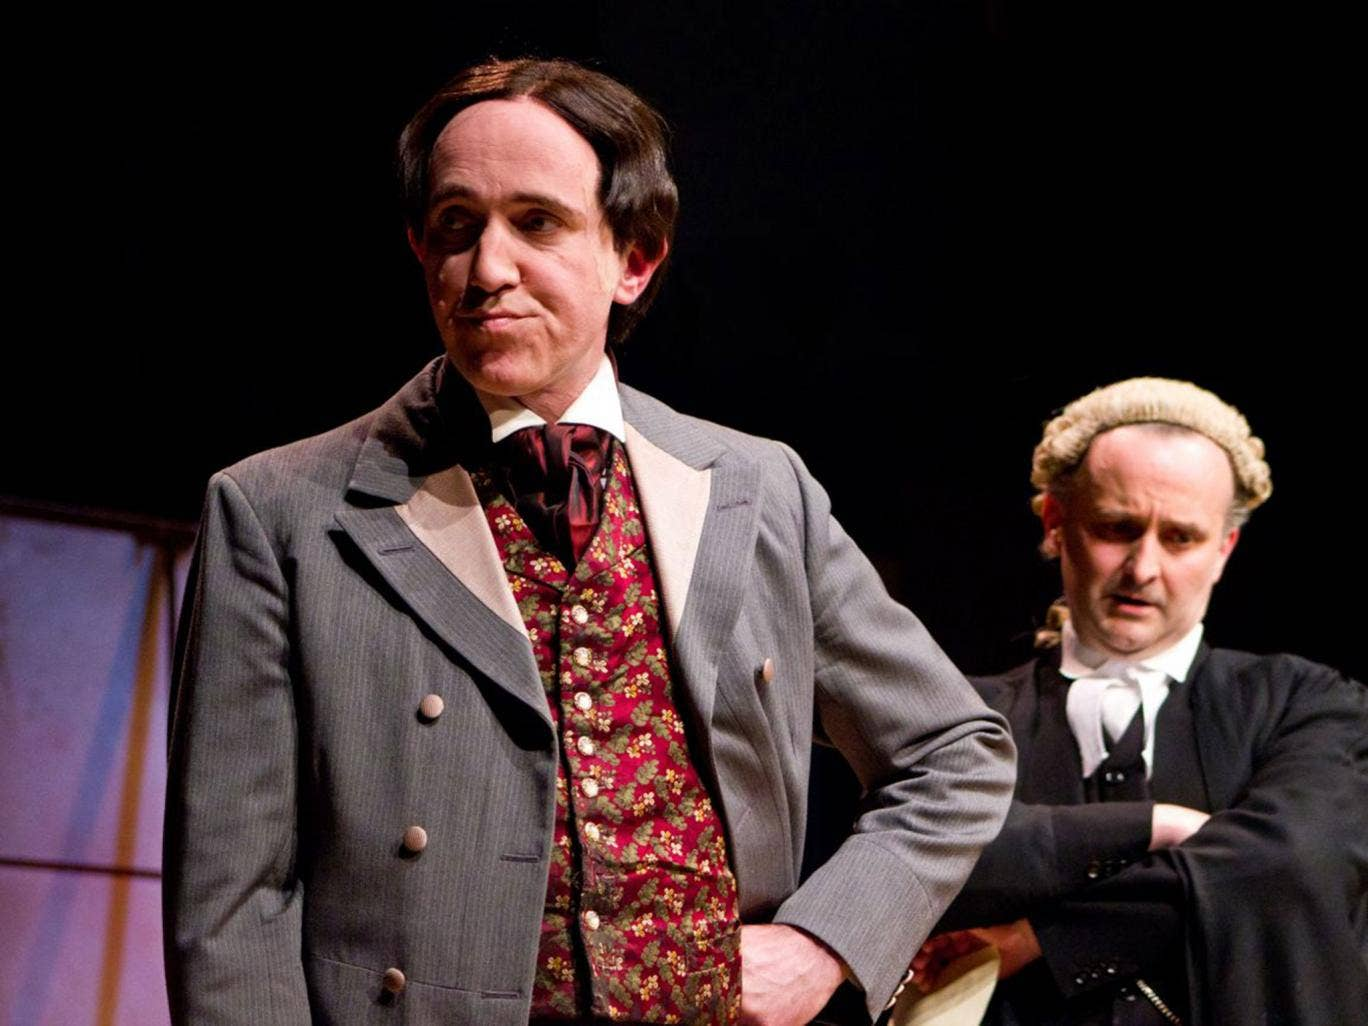 John Gorick as Wilde with William Kempsell in 'The Trials of Oscar Wilde'